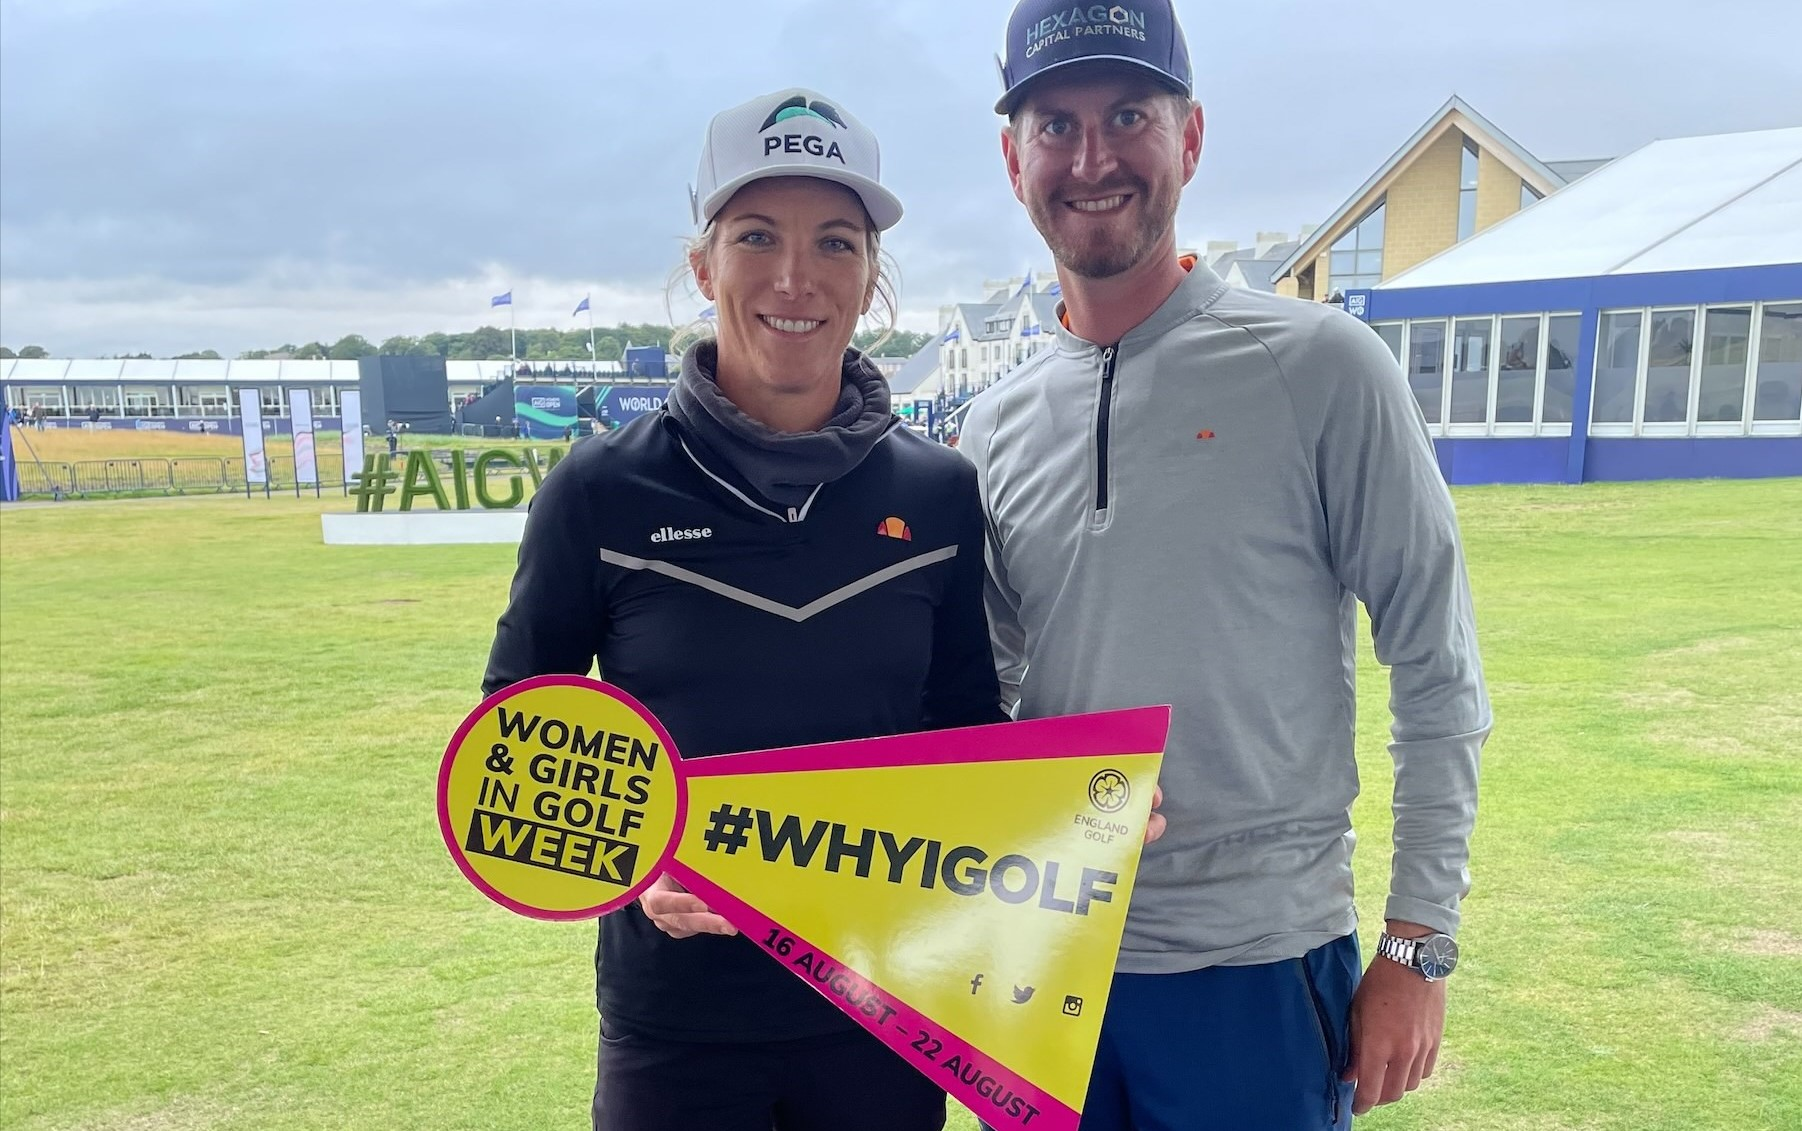 #WhyIGolf – Role Models: Mel goes from strength to strength to inspire others